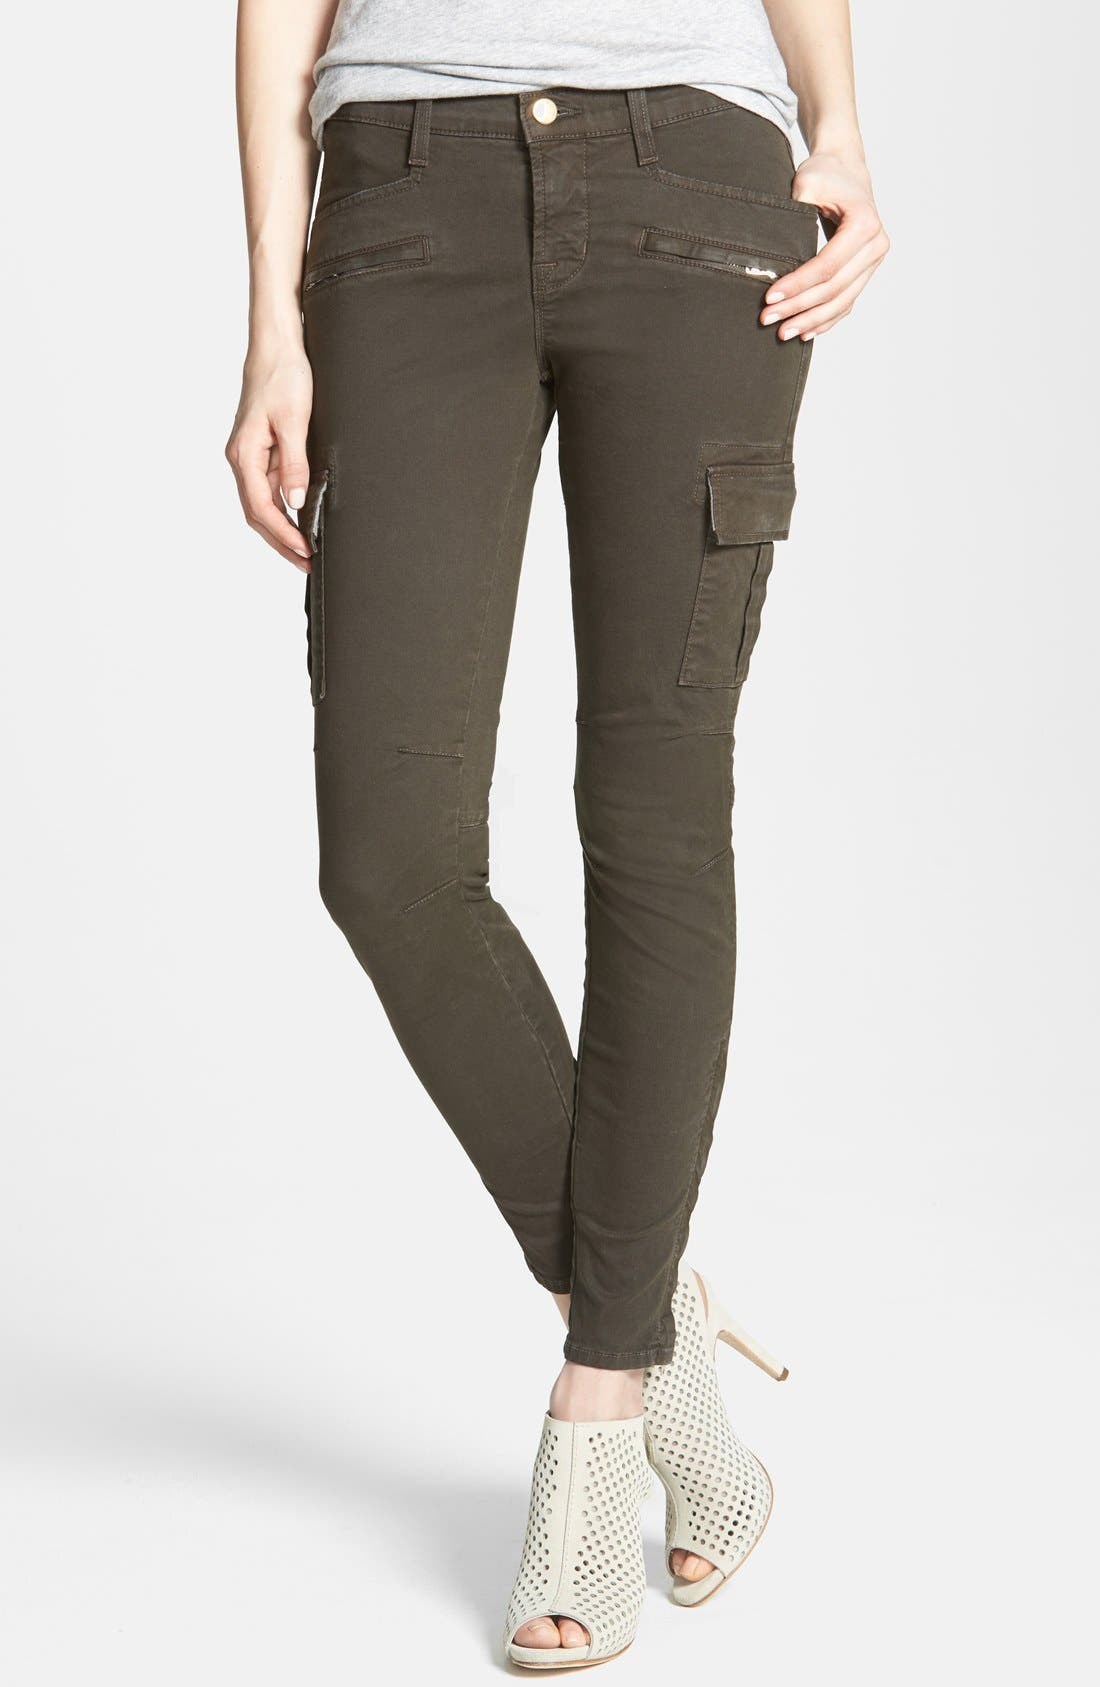 Alternate Image 1 Selected - J Brand 'Grayson' Zip Detail Cargo Skinny Jeans (Mantis)